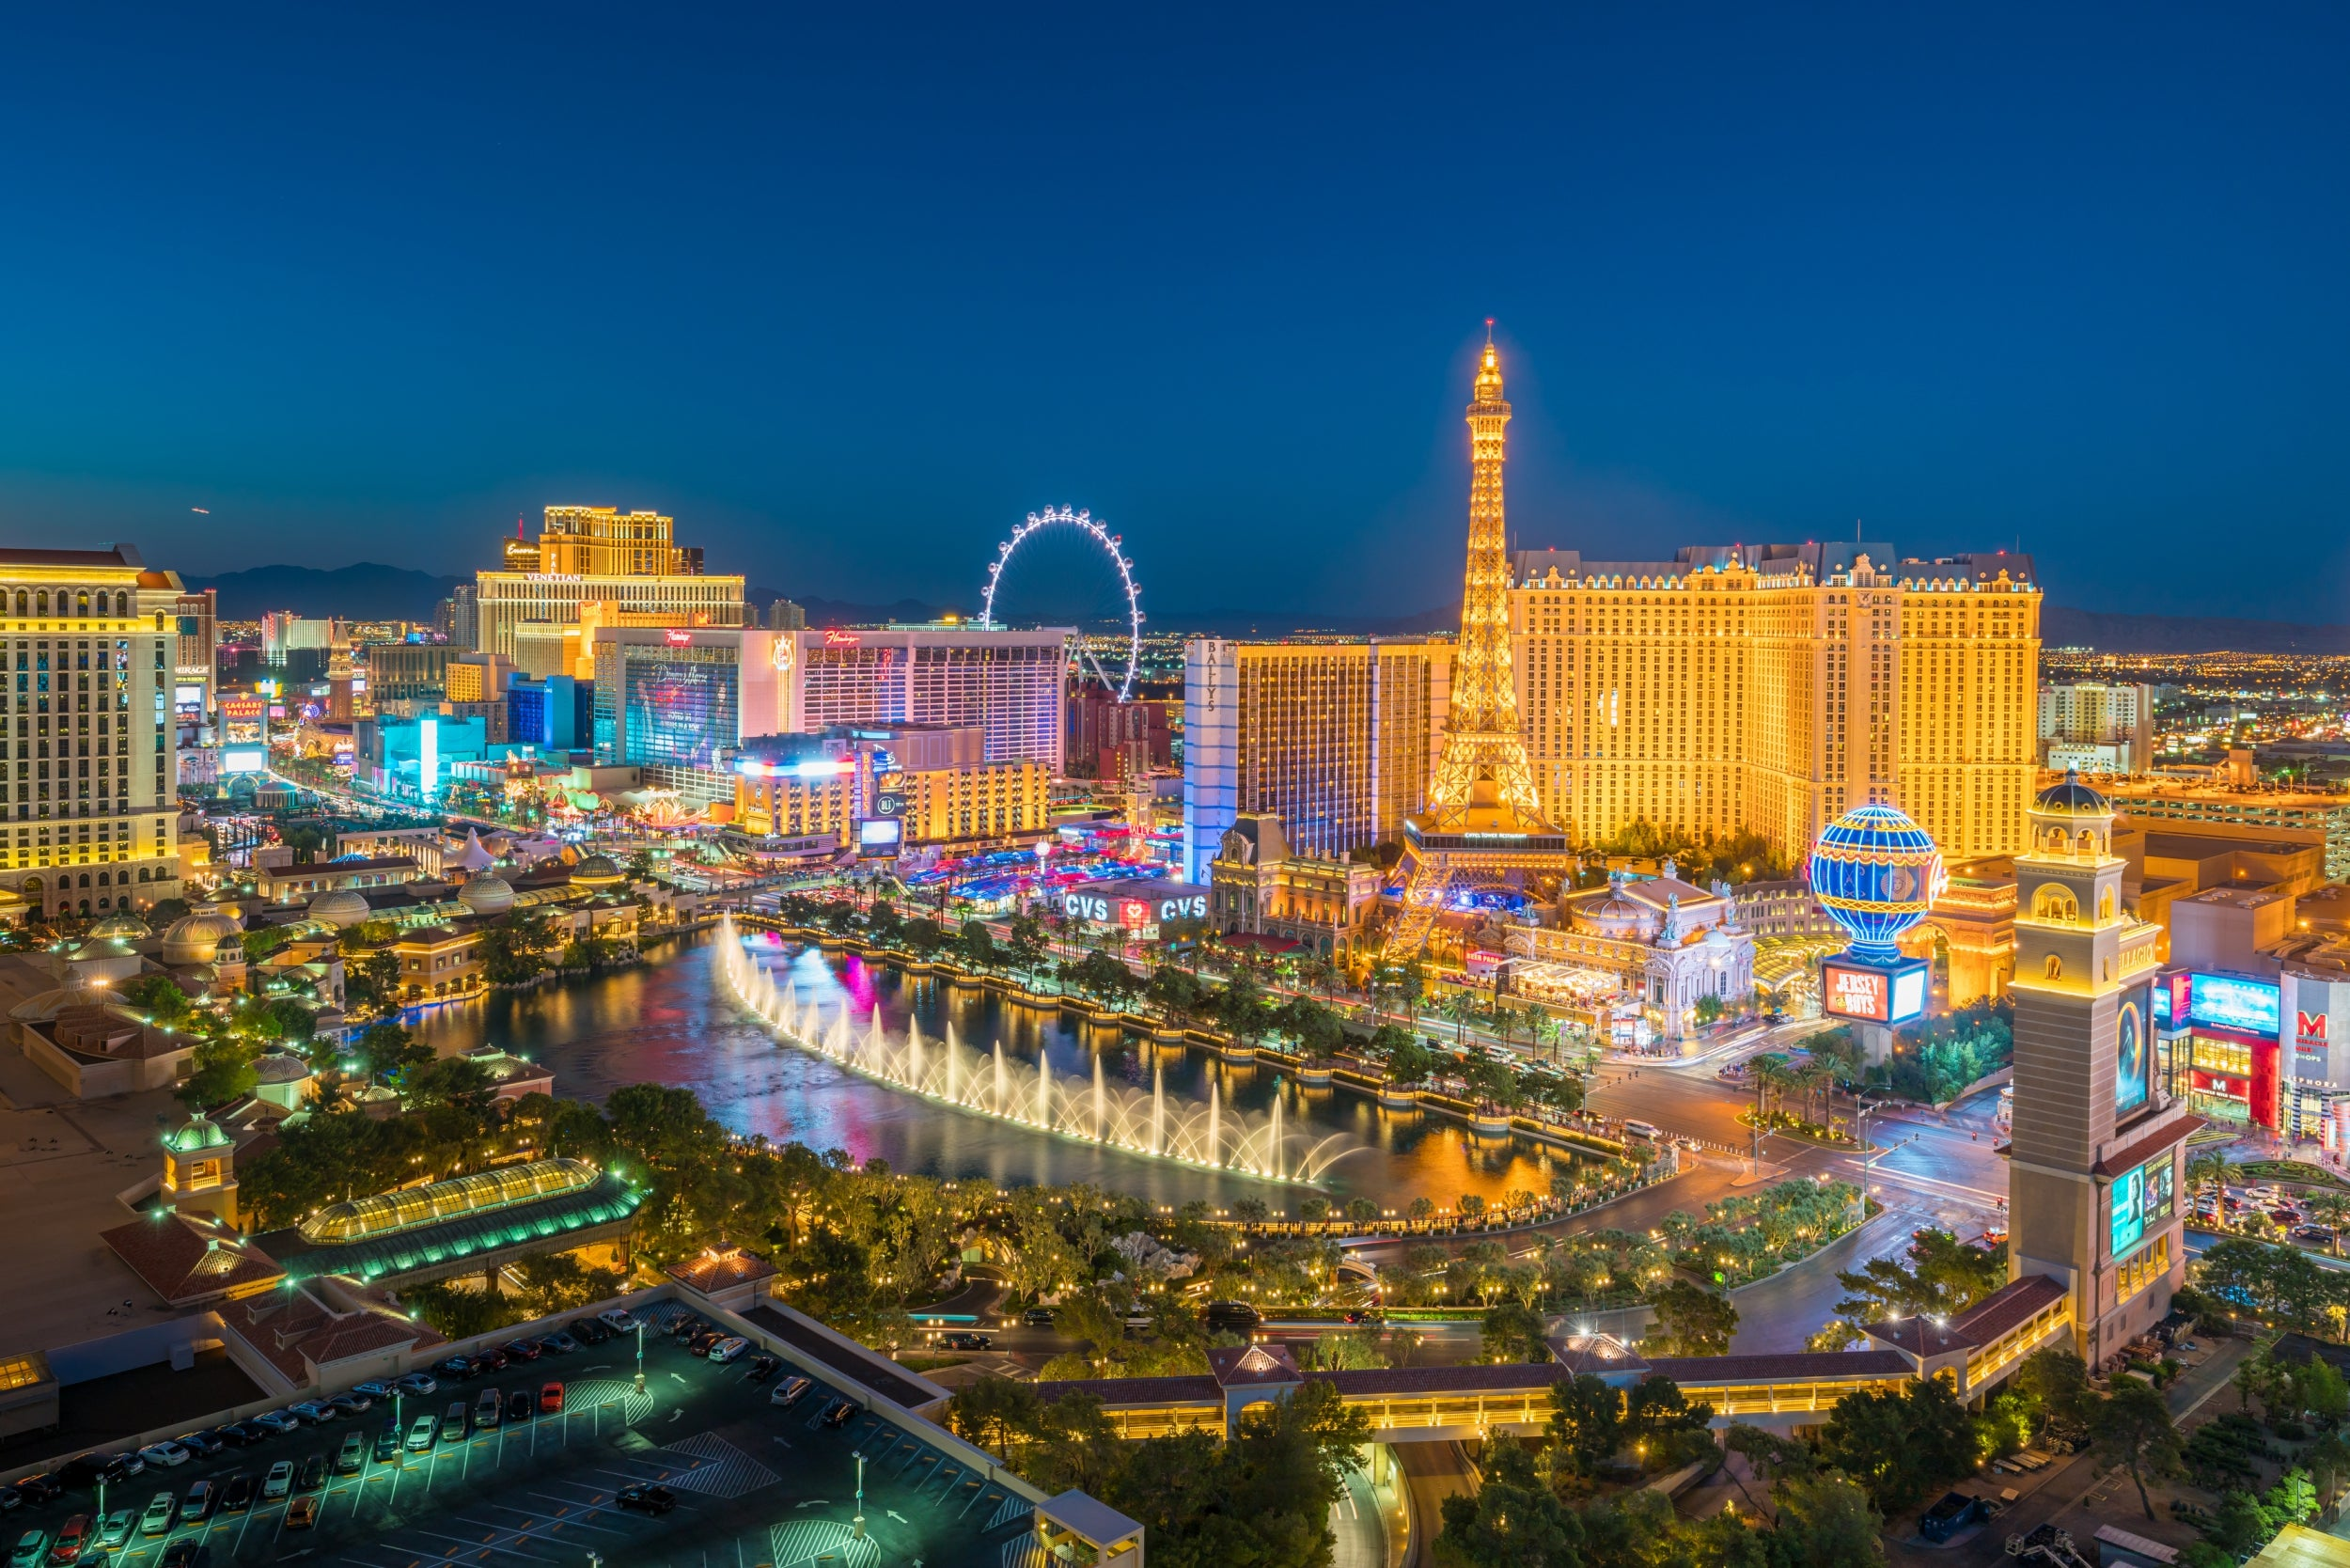 Las Vegas: Sin City bets big on culture